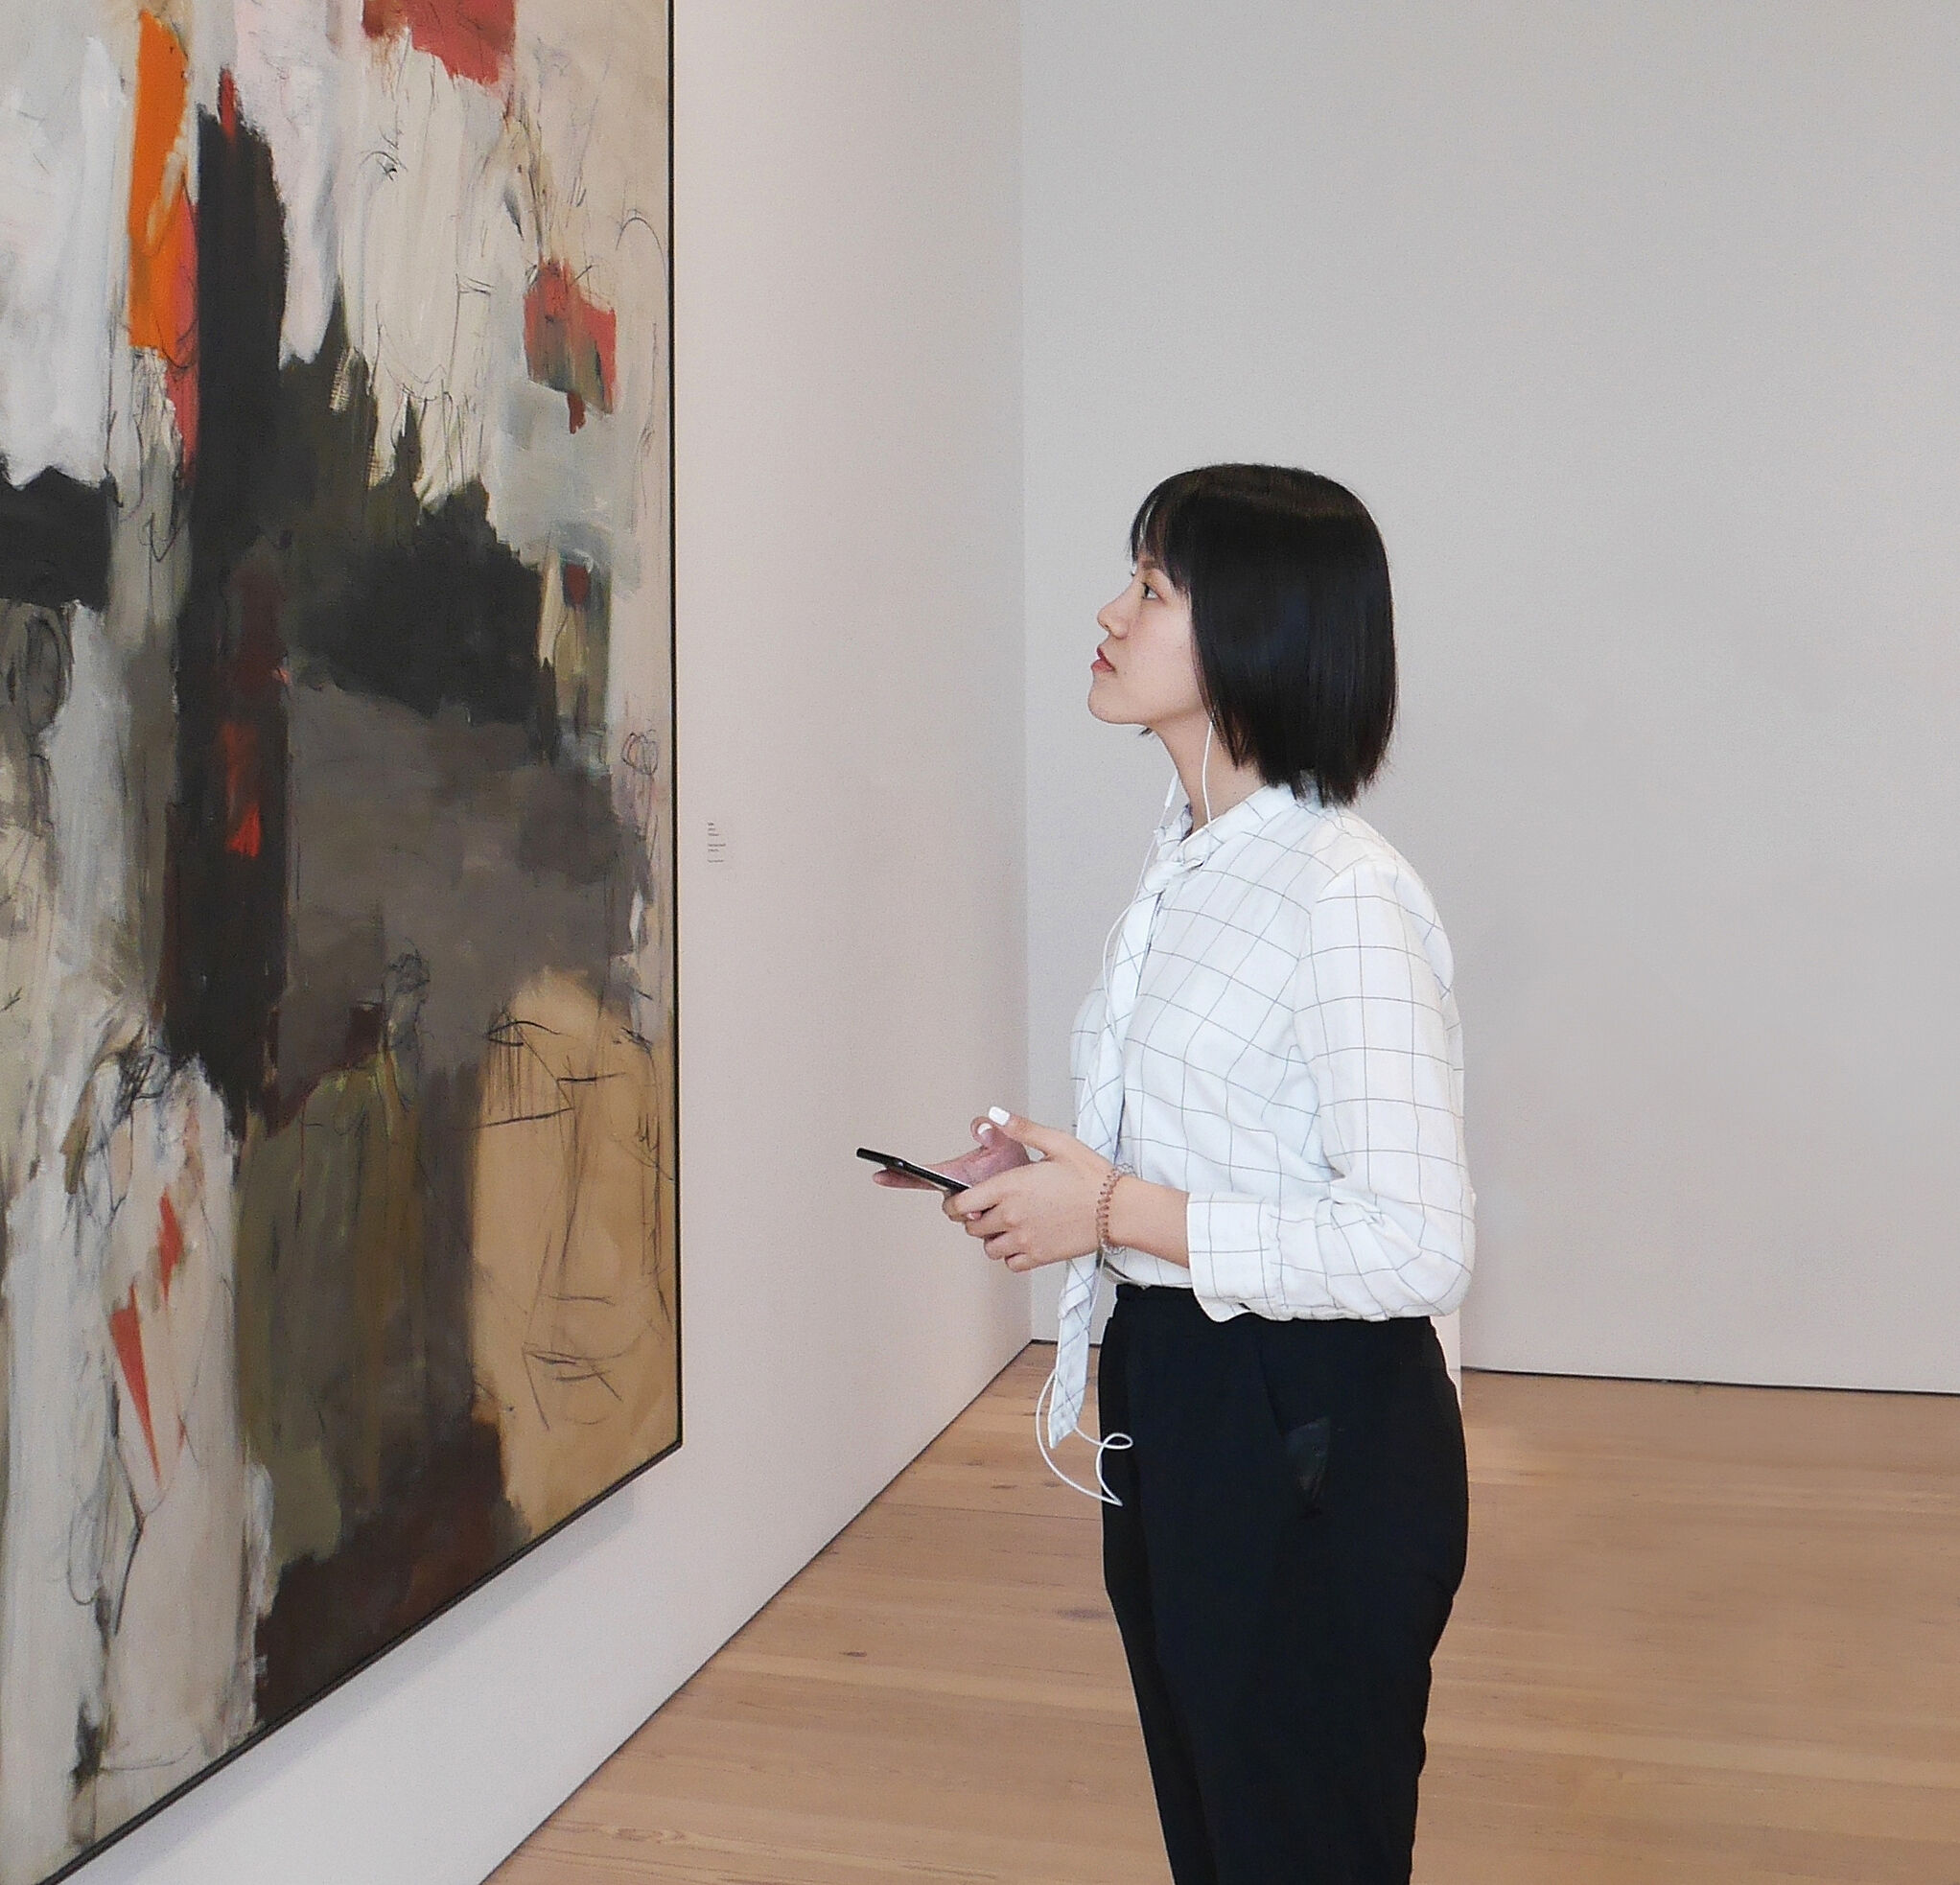 A visitor listens to the Whitney Mobile Guide on her phone.